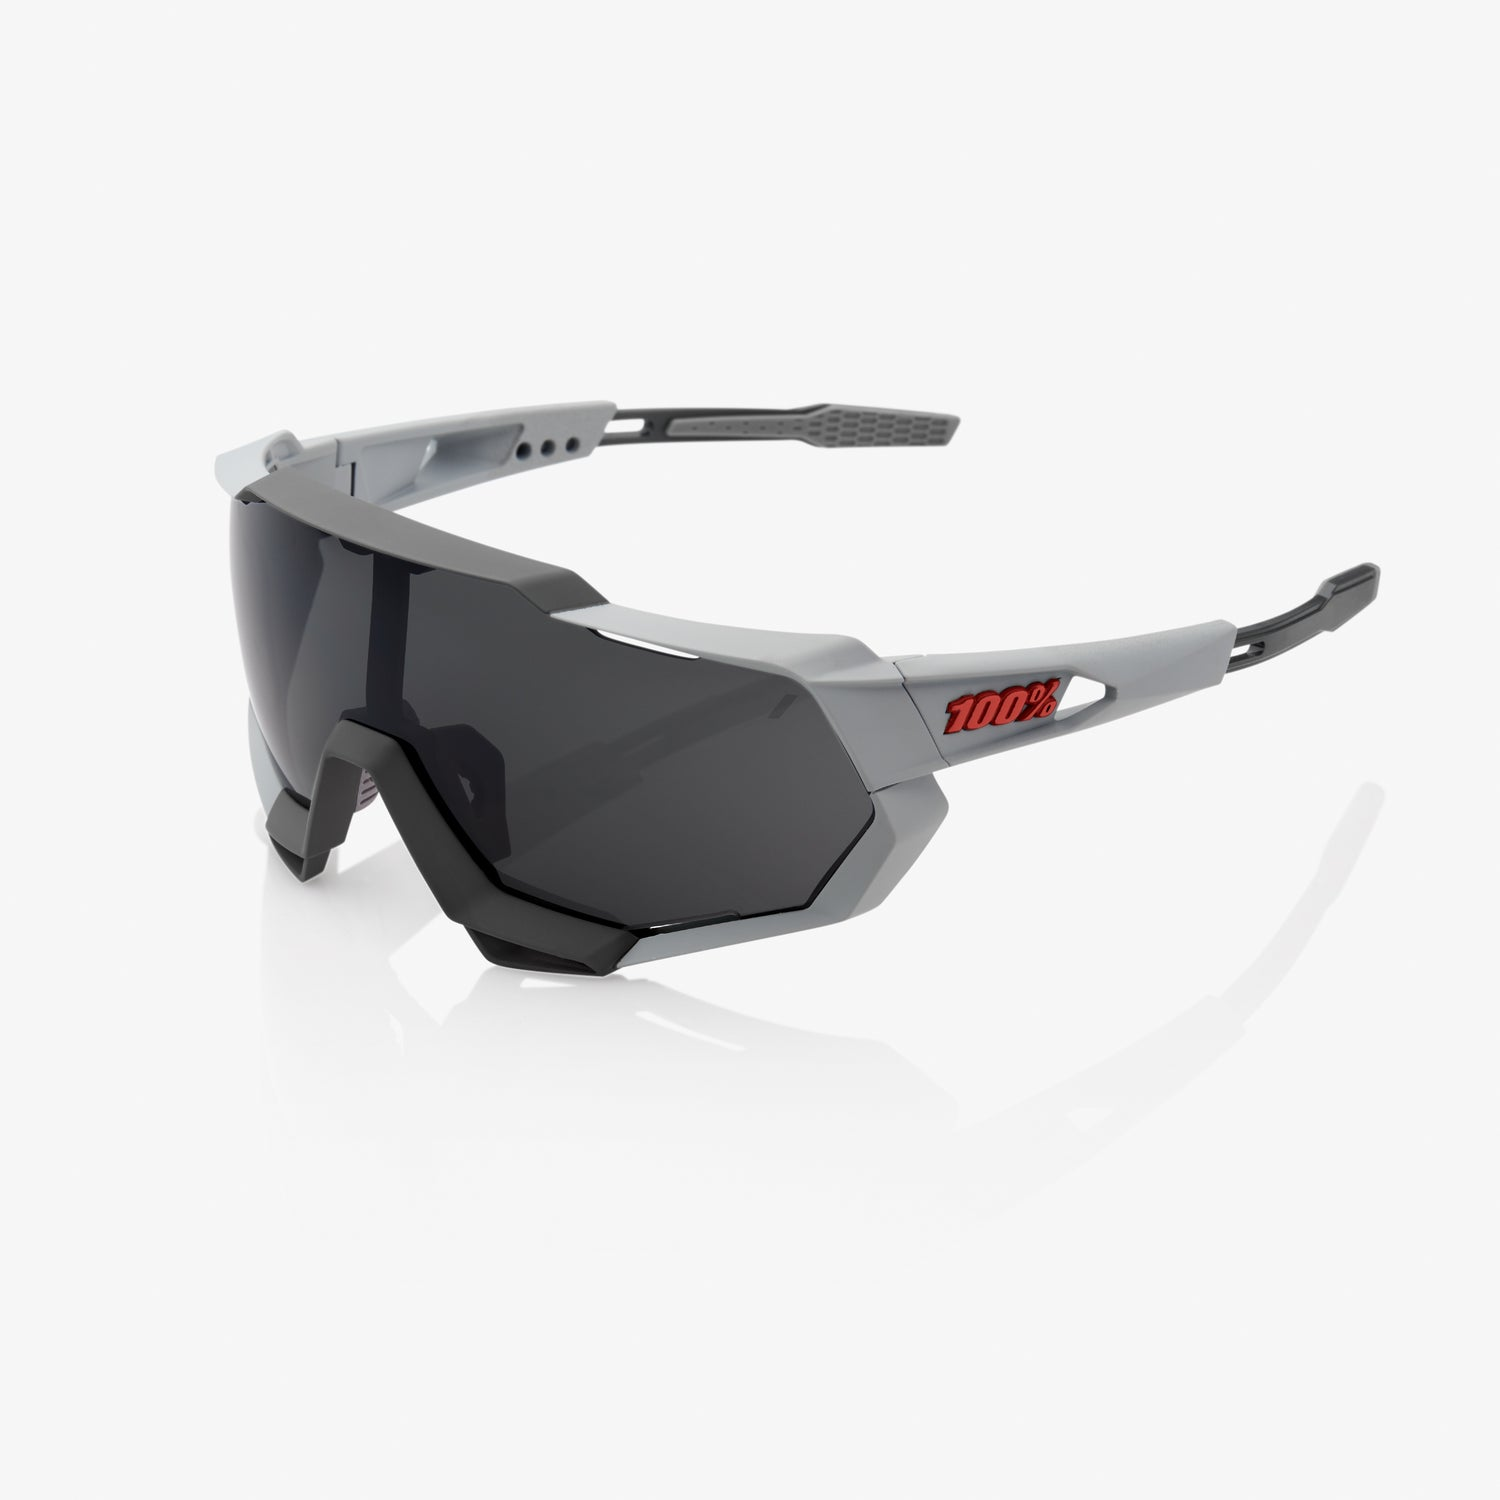 SPEEDTRAP - Soft Tact Stone Grey - Smoke Lens